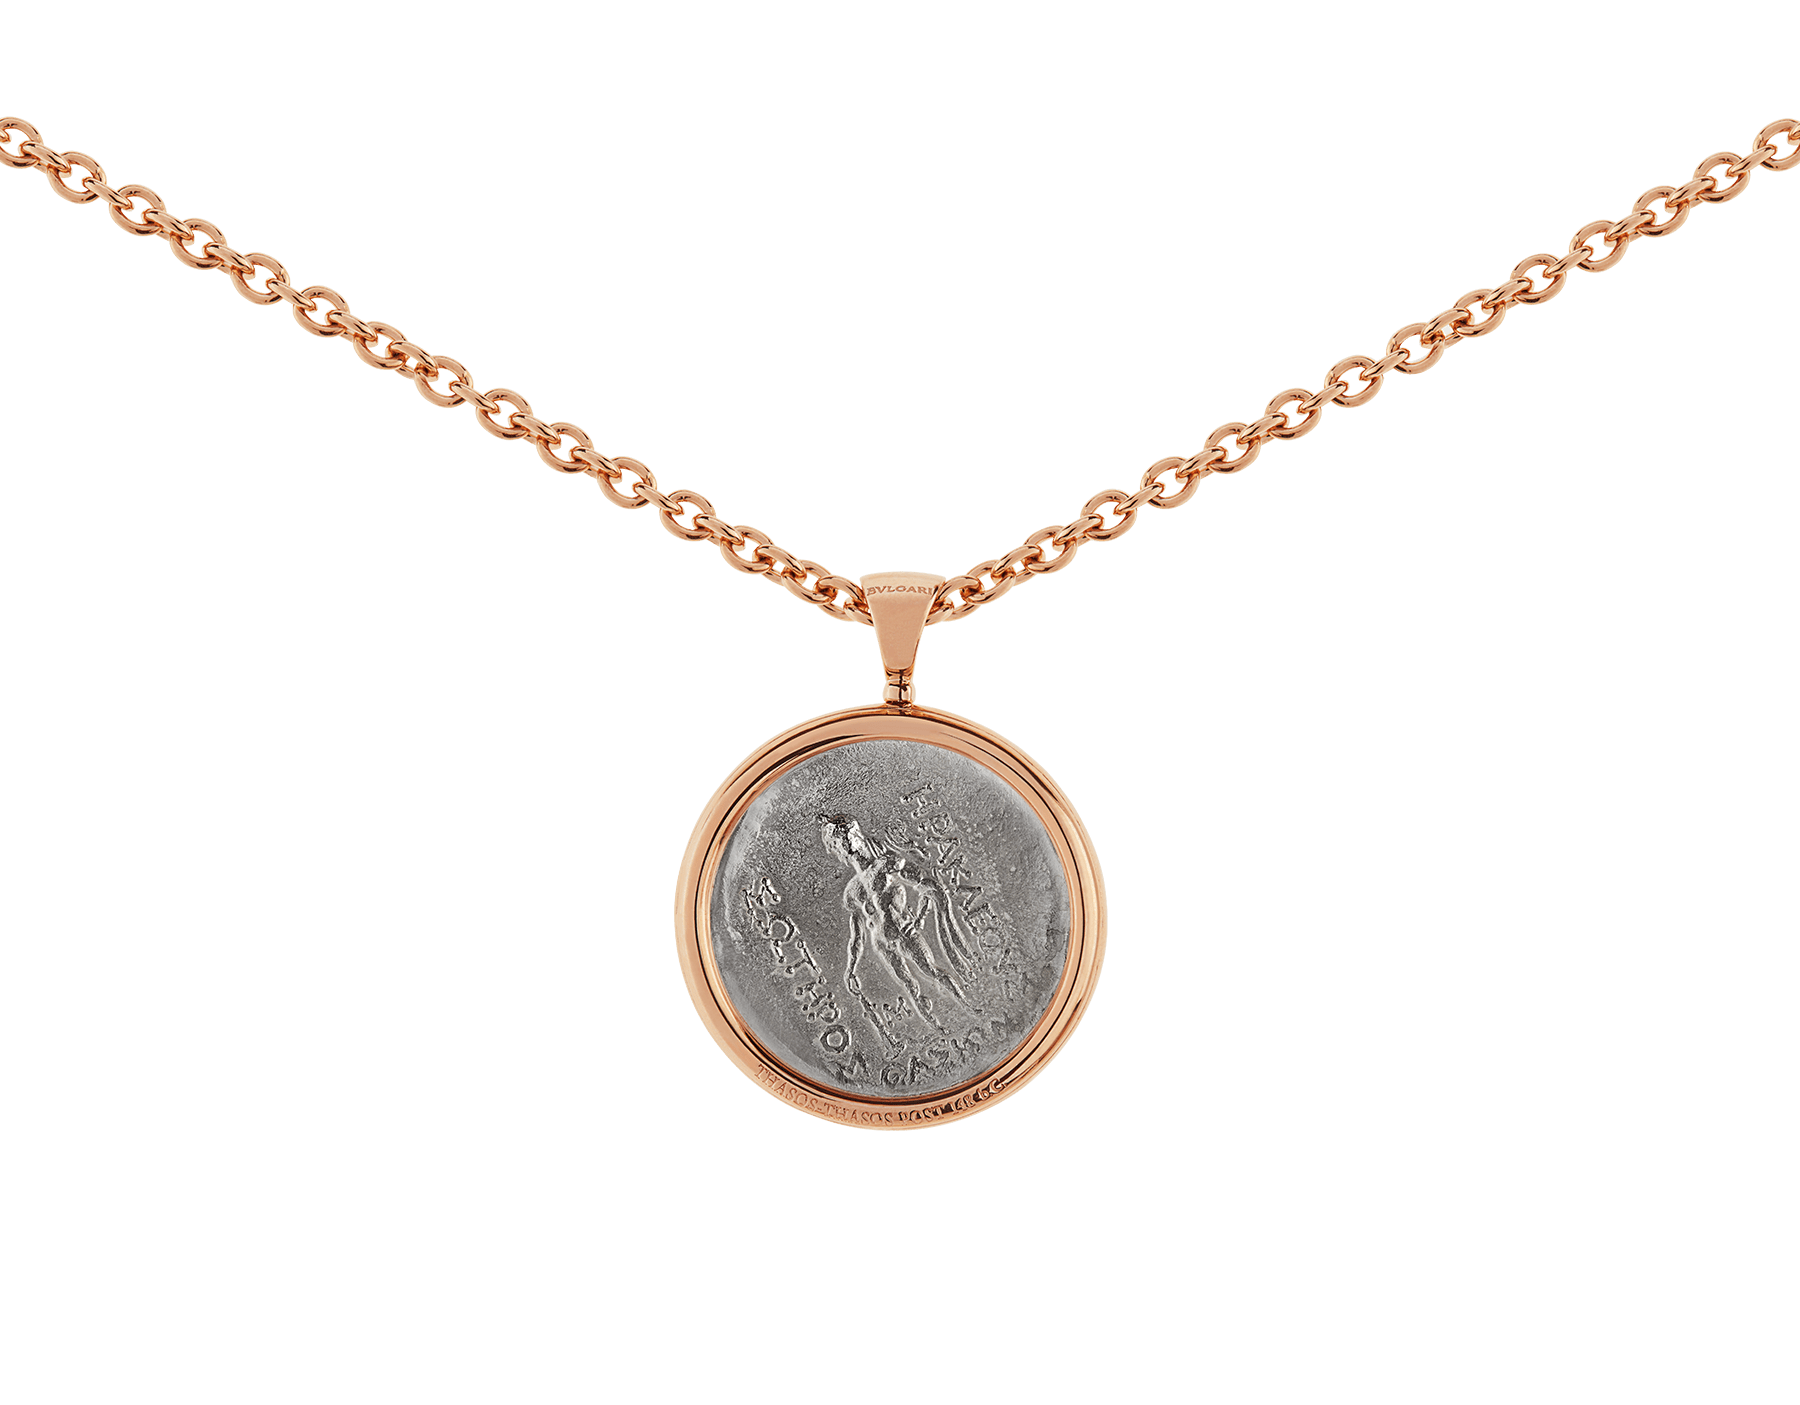 Monete necklace with 18 kt rose gold chain and 18 kt rose gold pendant set with an antique coin 347707 image 4